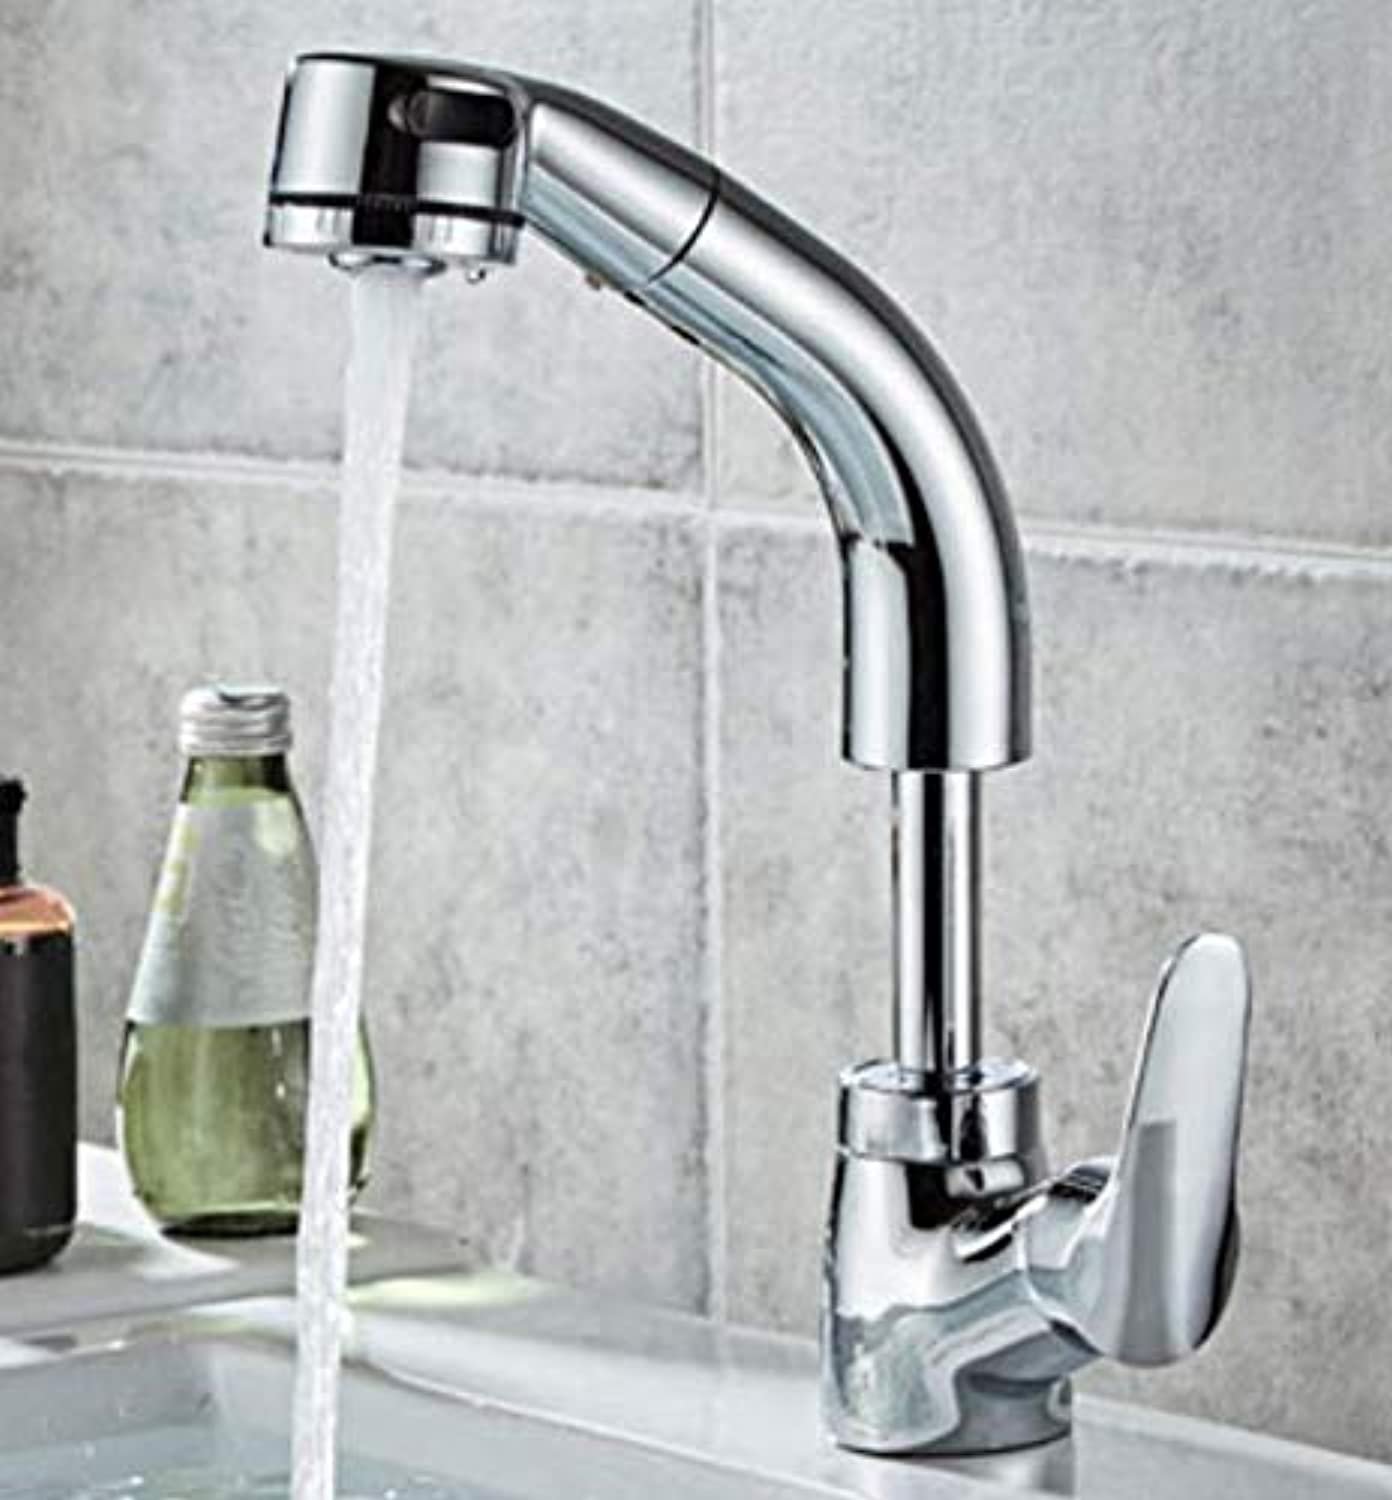 Bathroom Faucet Copper Faucet Pull-Type Washbasin Hot and Cold Basin Sink Lift Telescopic Shampoo Faucet